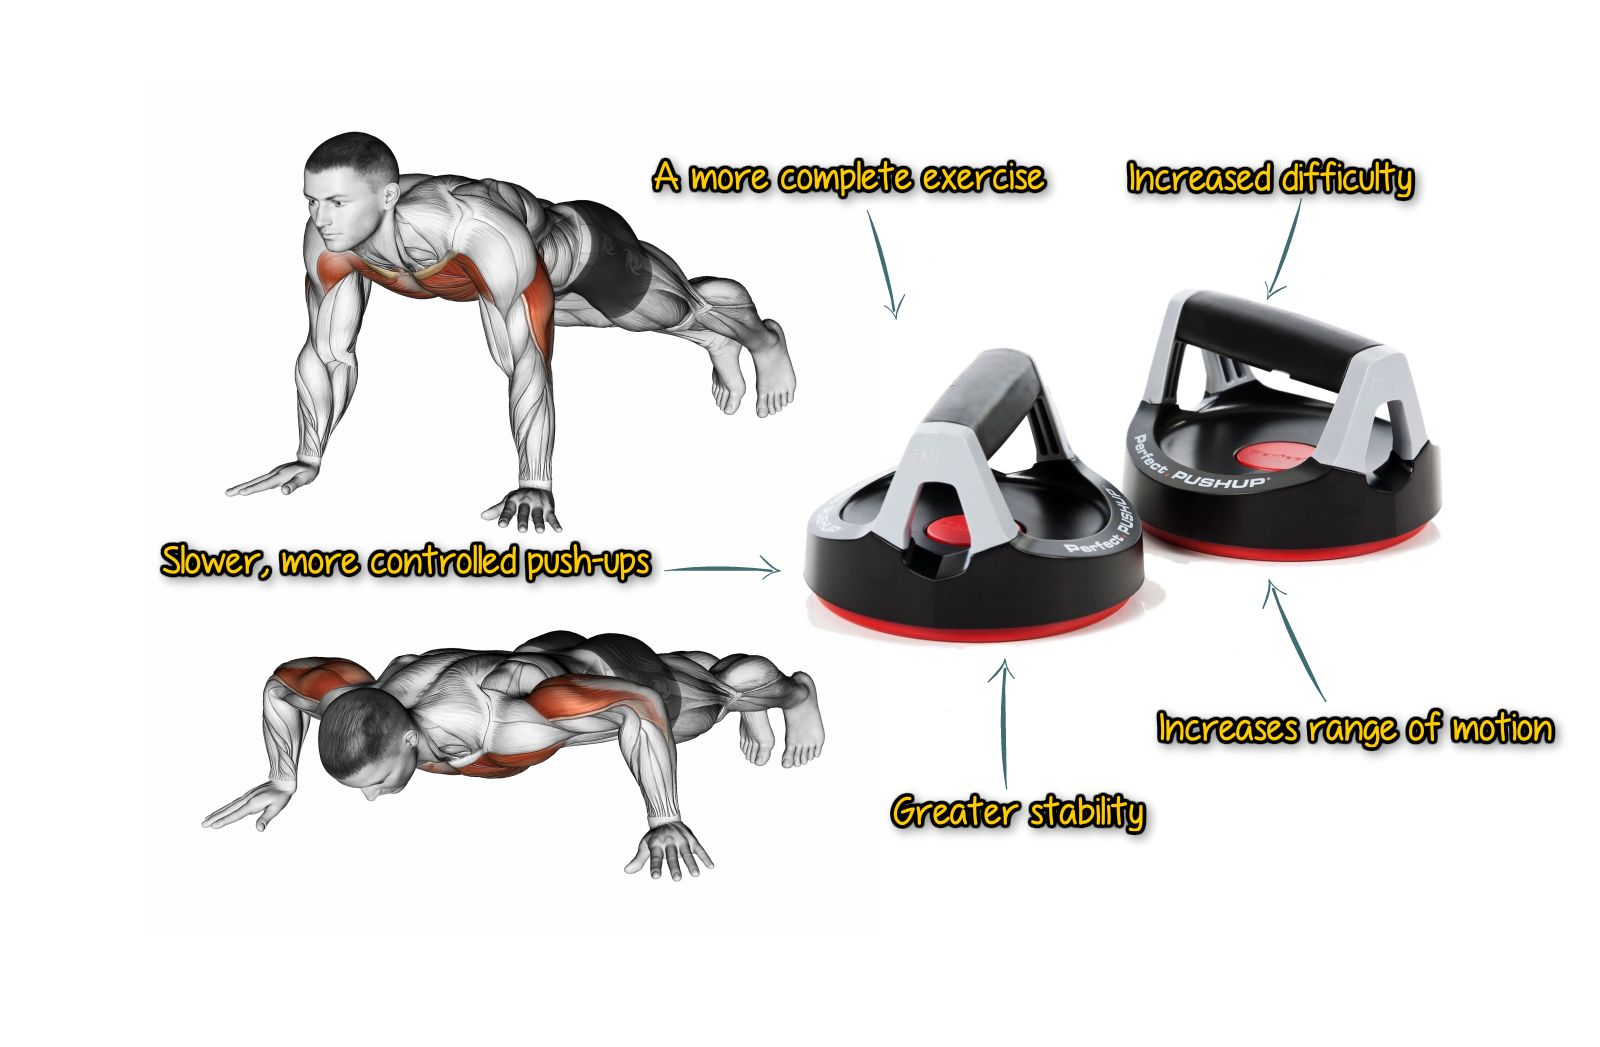 The Perfect Pushup Workout (With images) Perfect pushup